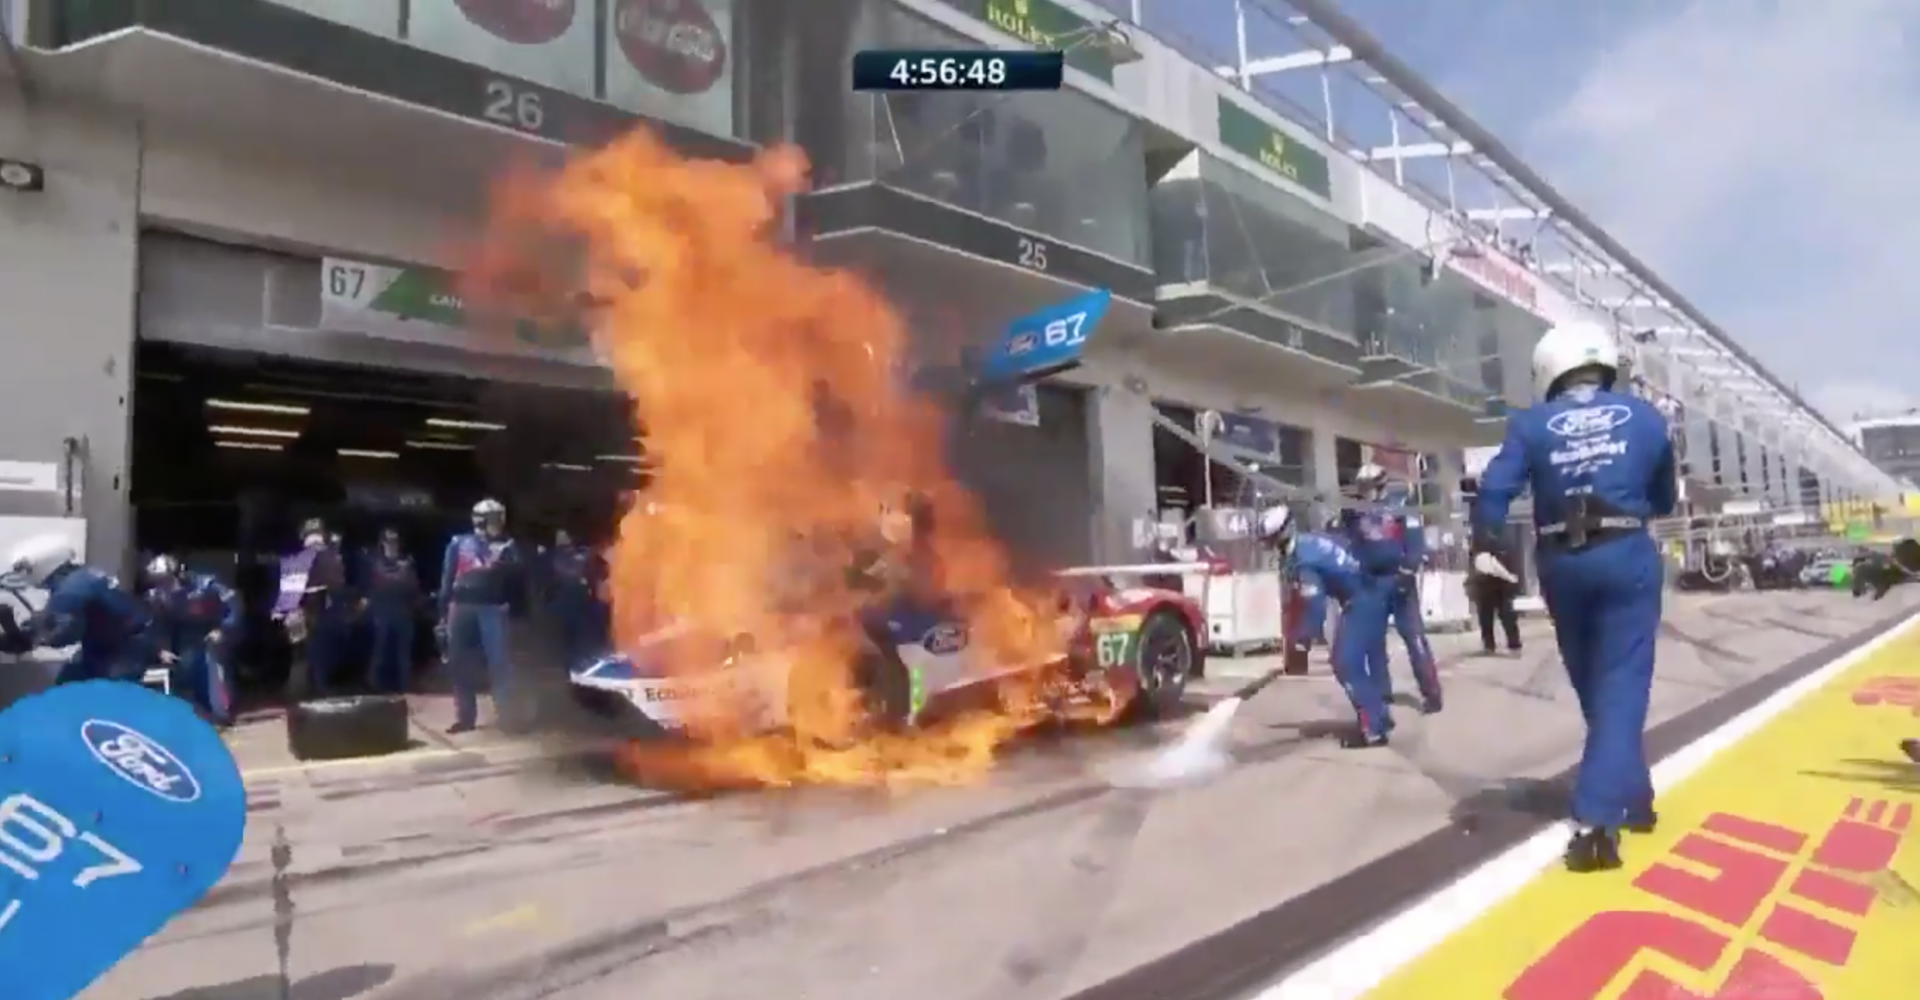 Ford GT Racer Bursts Into Flames During Pit Stop, We All Die A Little On The Inside